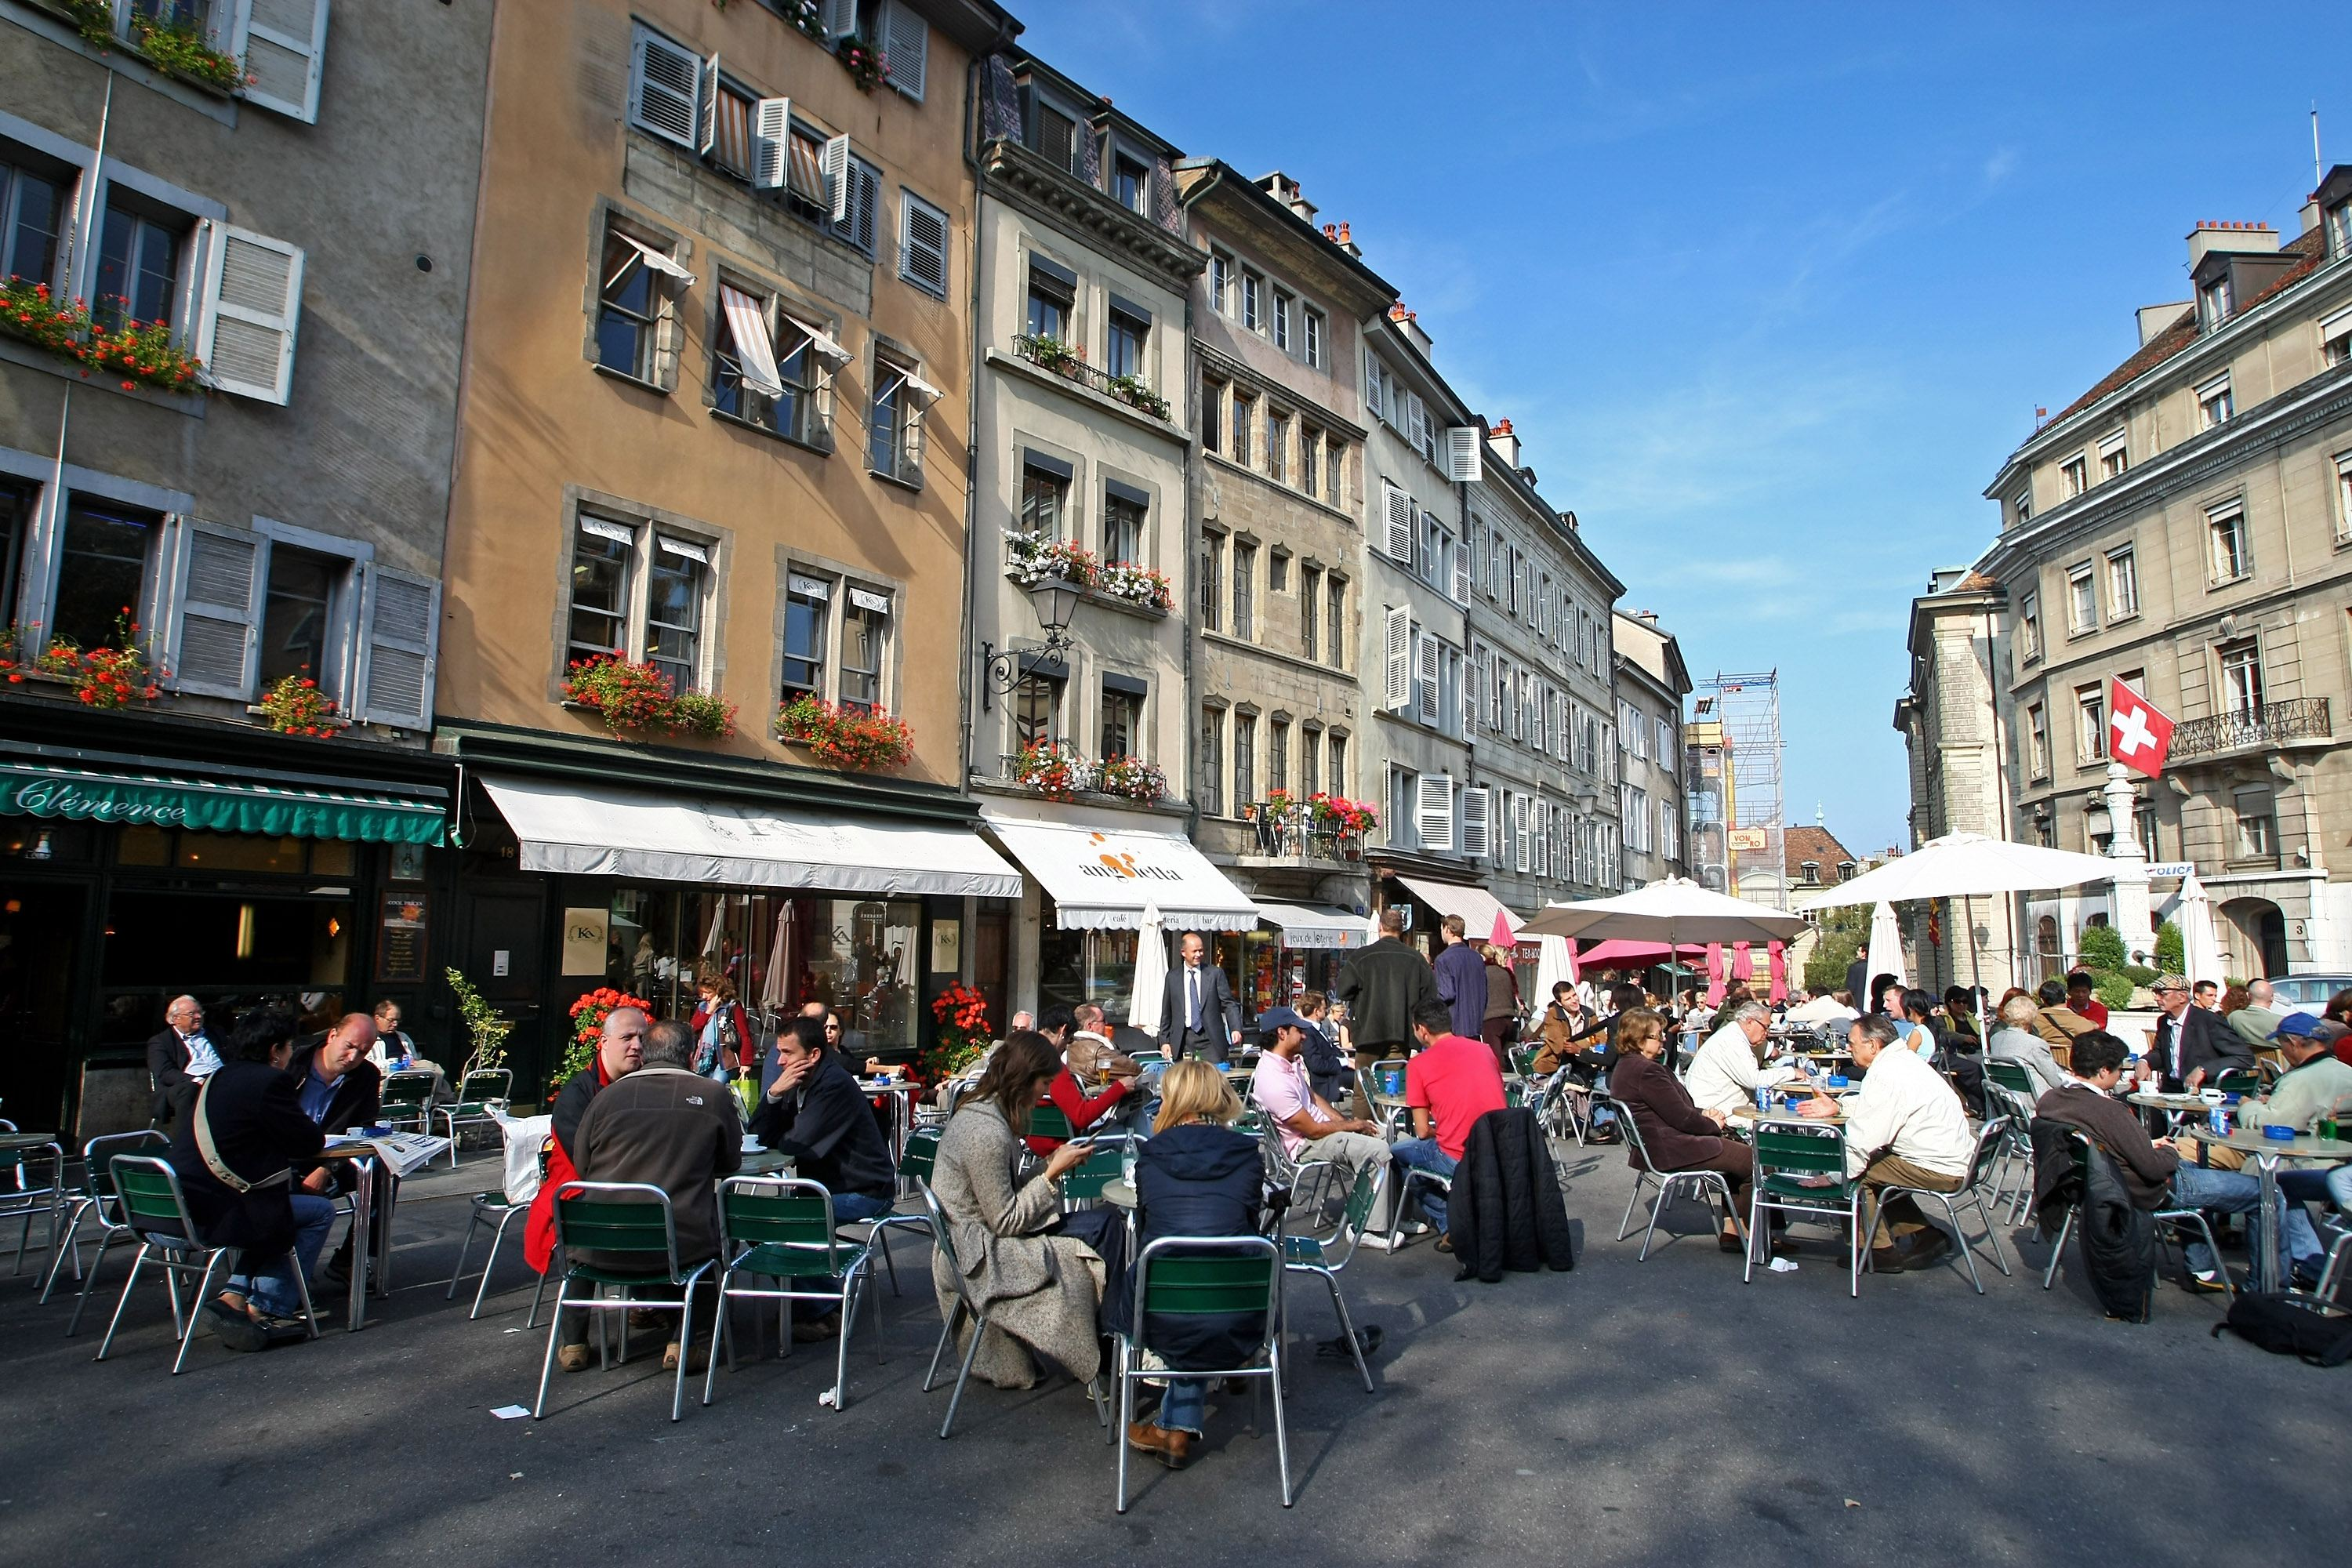 Cafe culture in the old town of Geneva, Switzerland